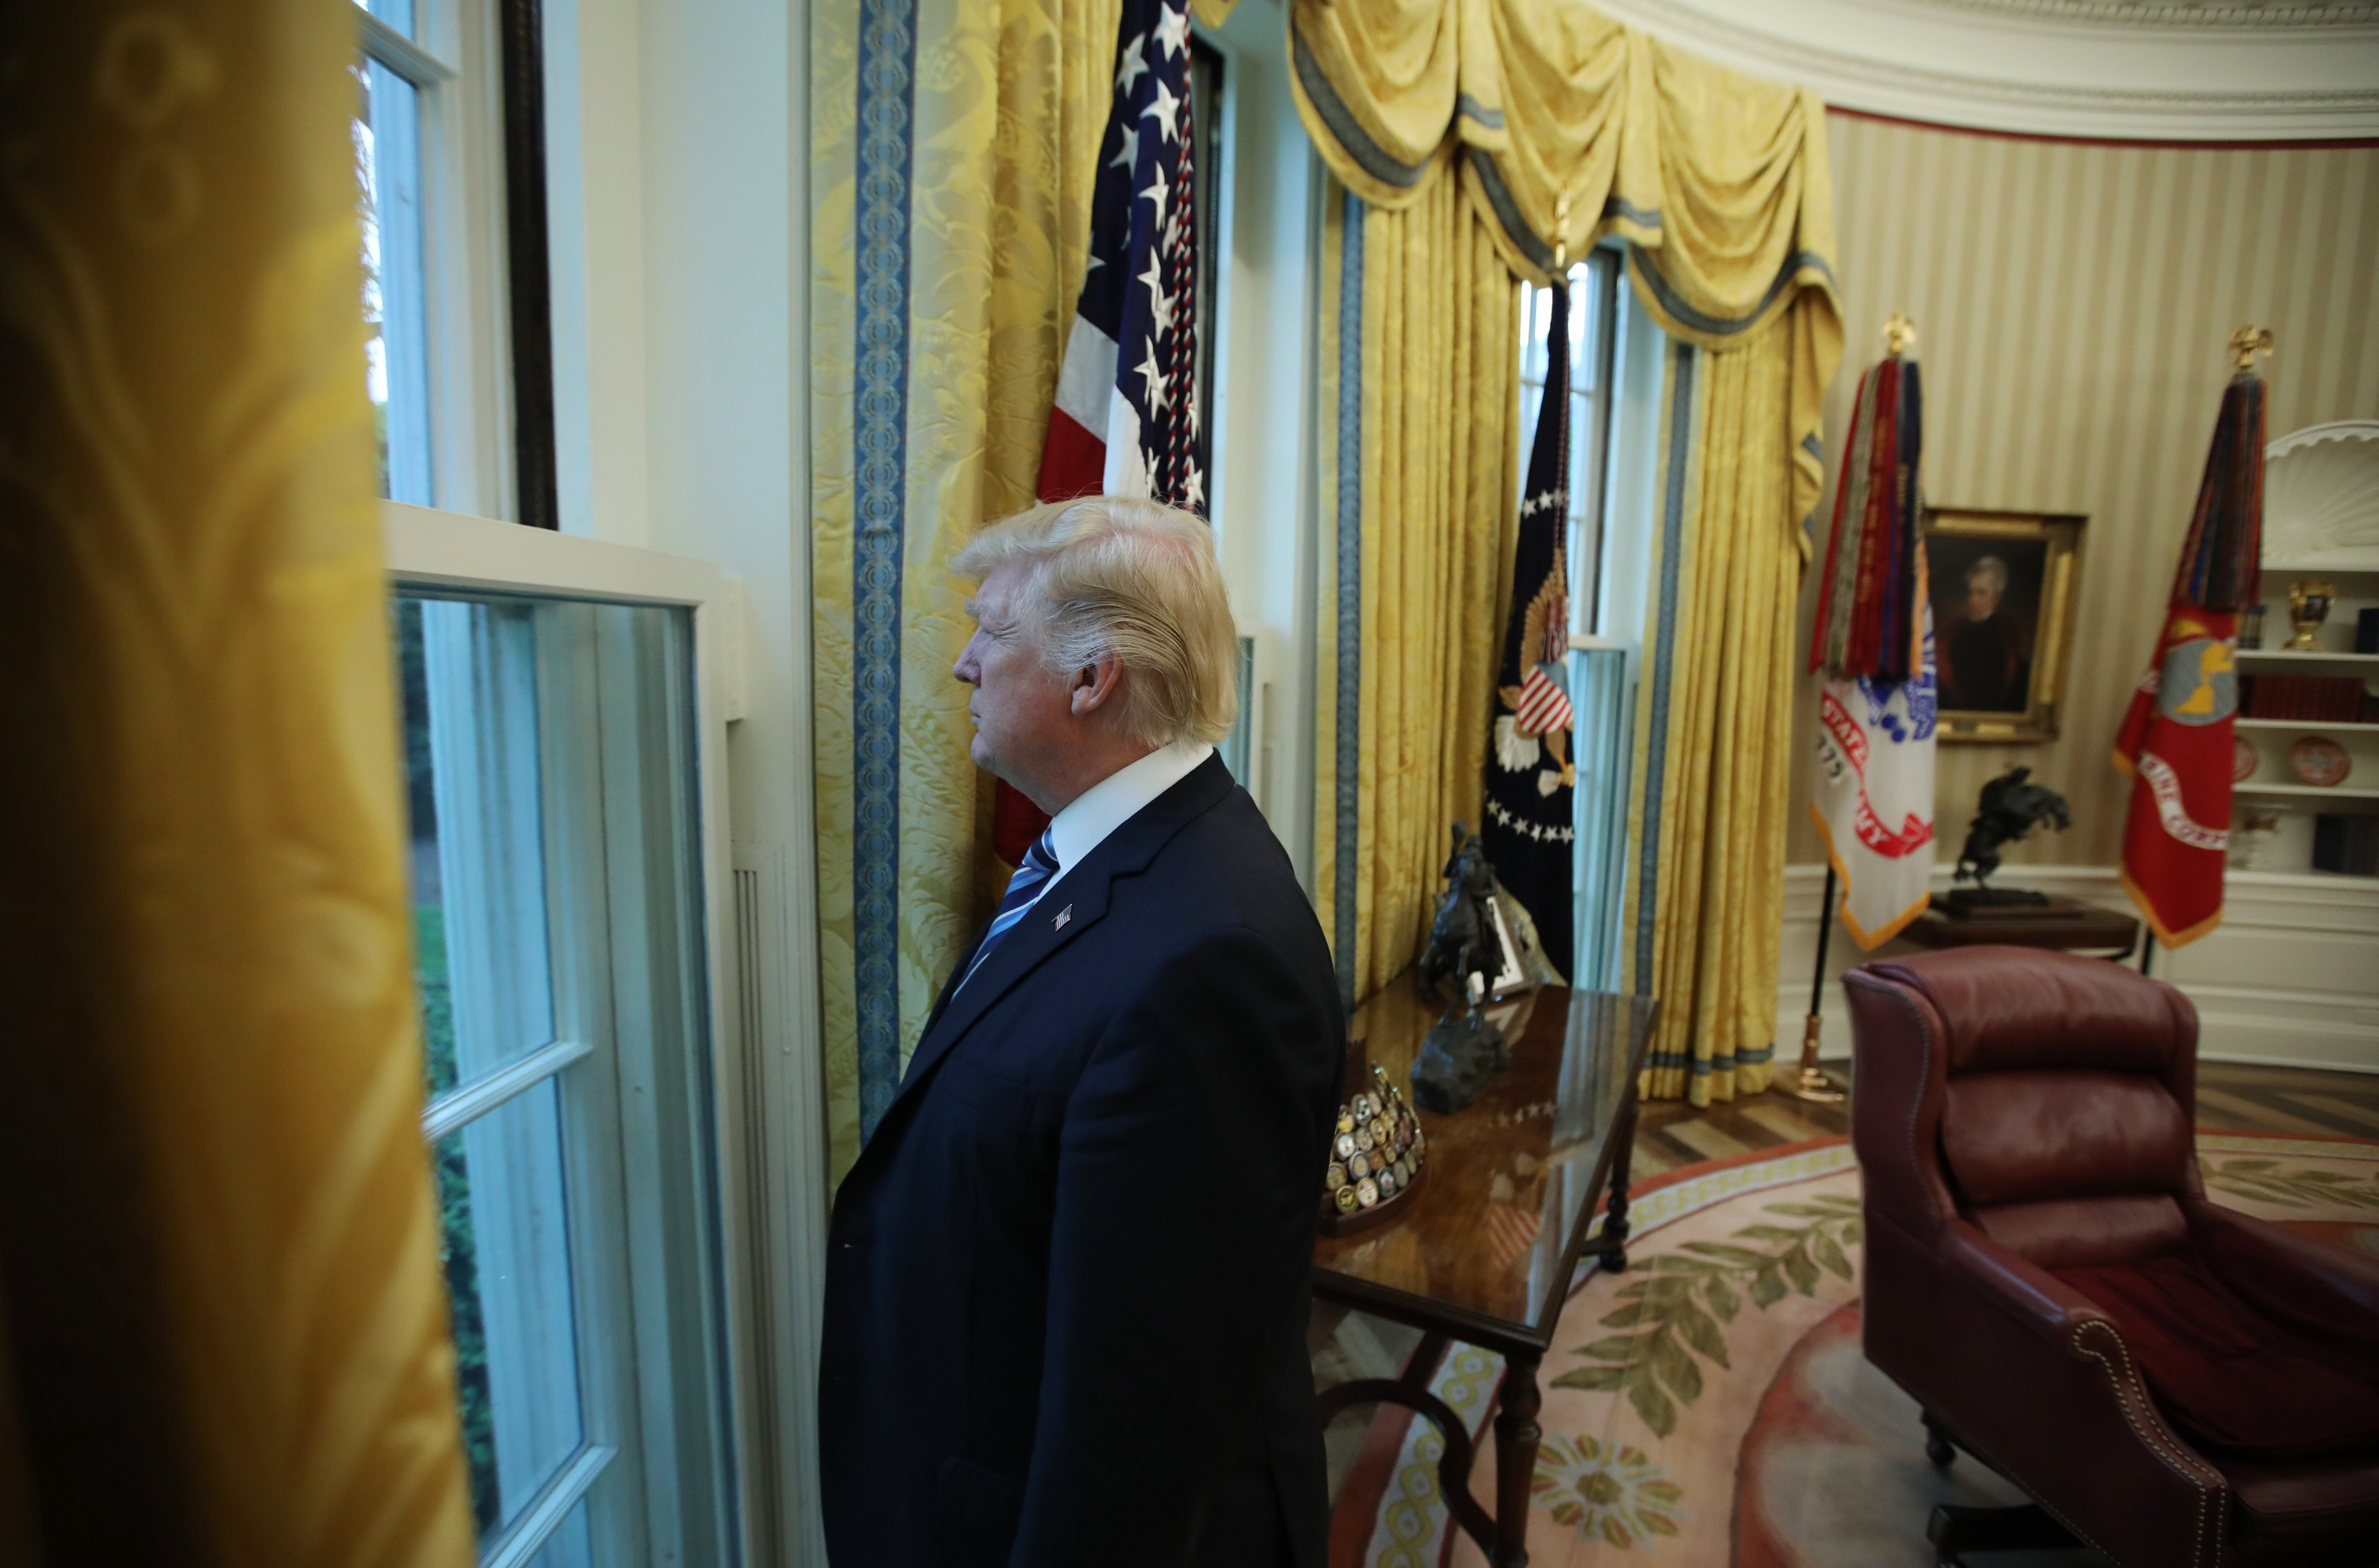 President Donald Trump looks out a window of the Oval Office following an interview with Reuters at the White House in Washington on April 27, 2017. (REUTERS/Carlos Barria)